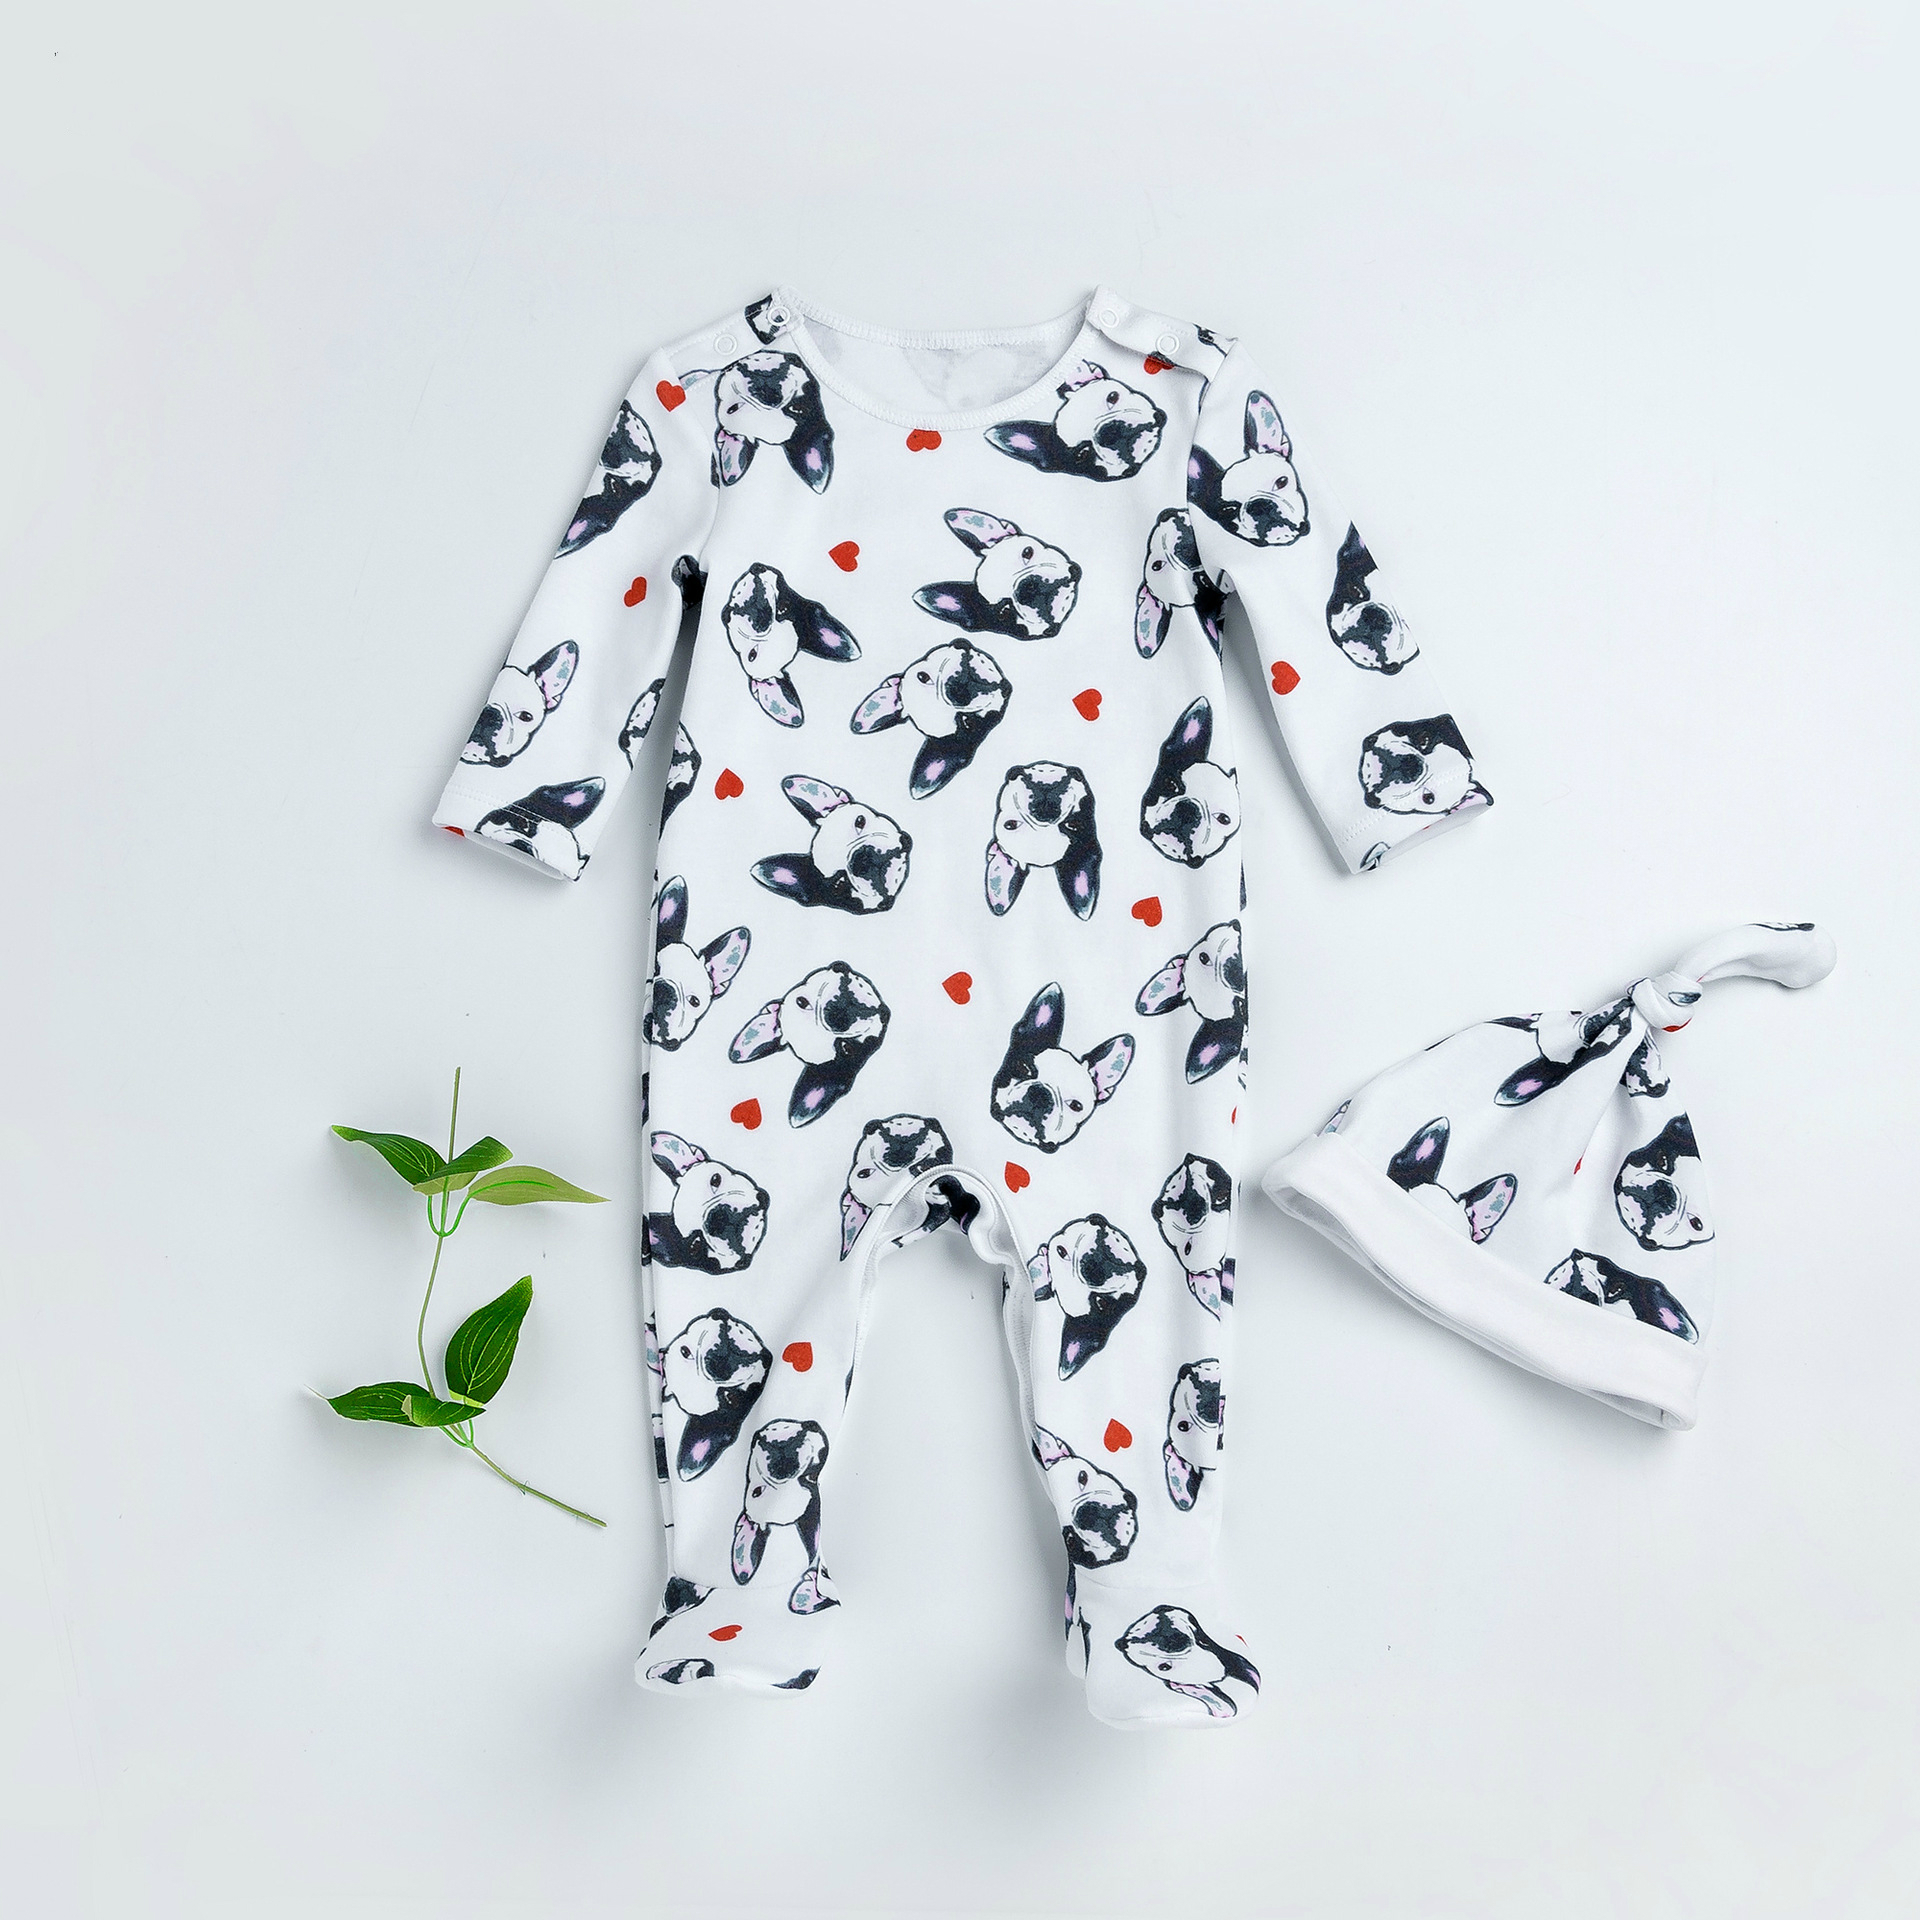 Baby Rompers Tiny Cottons Newborn Boys Romper Girls Clothes Dog